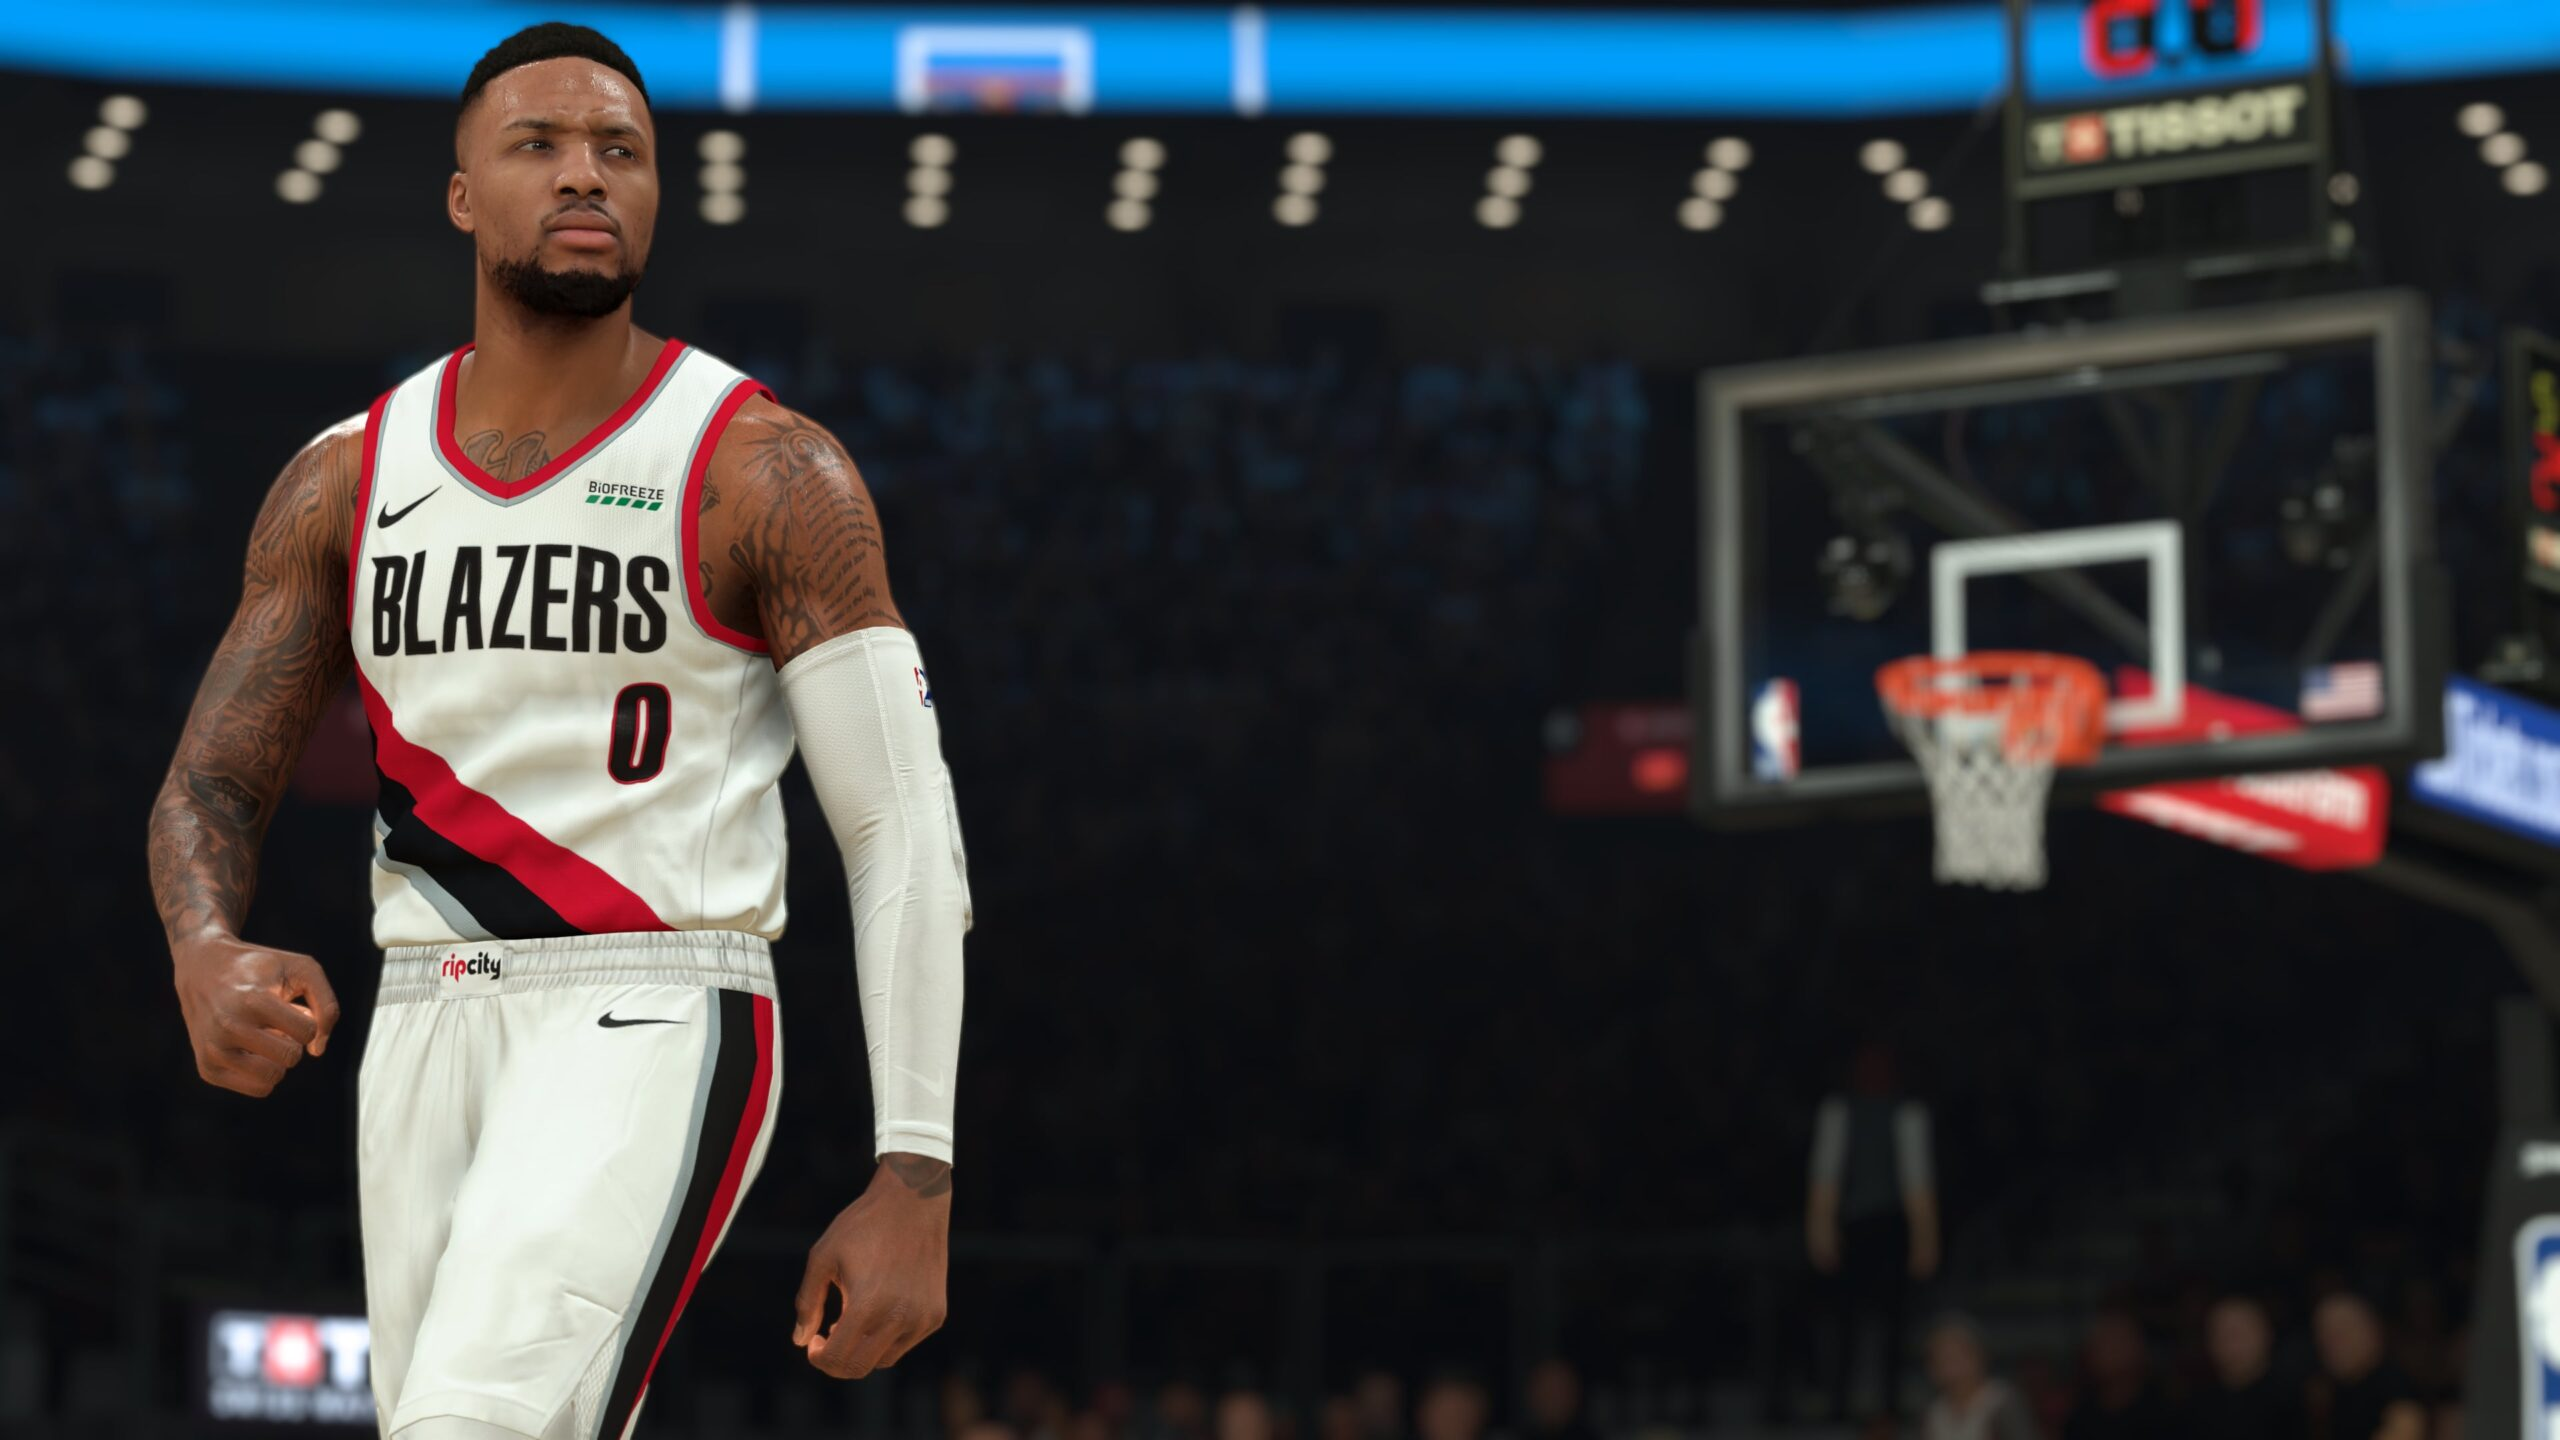 nba 2k21 update 1.03 patch notes